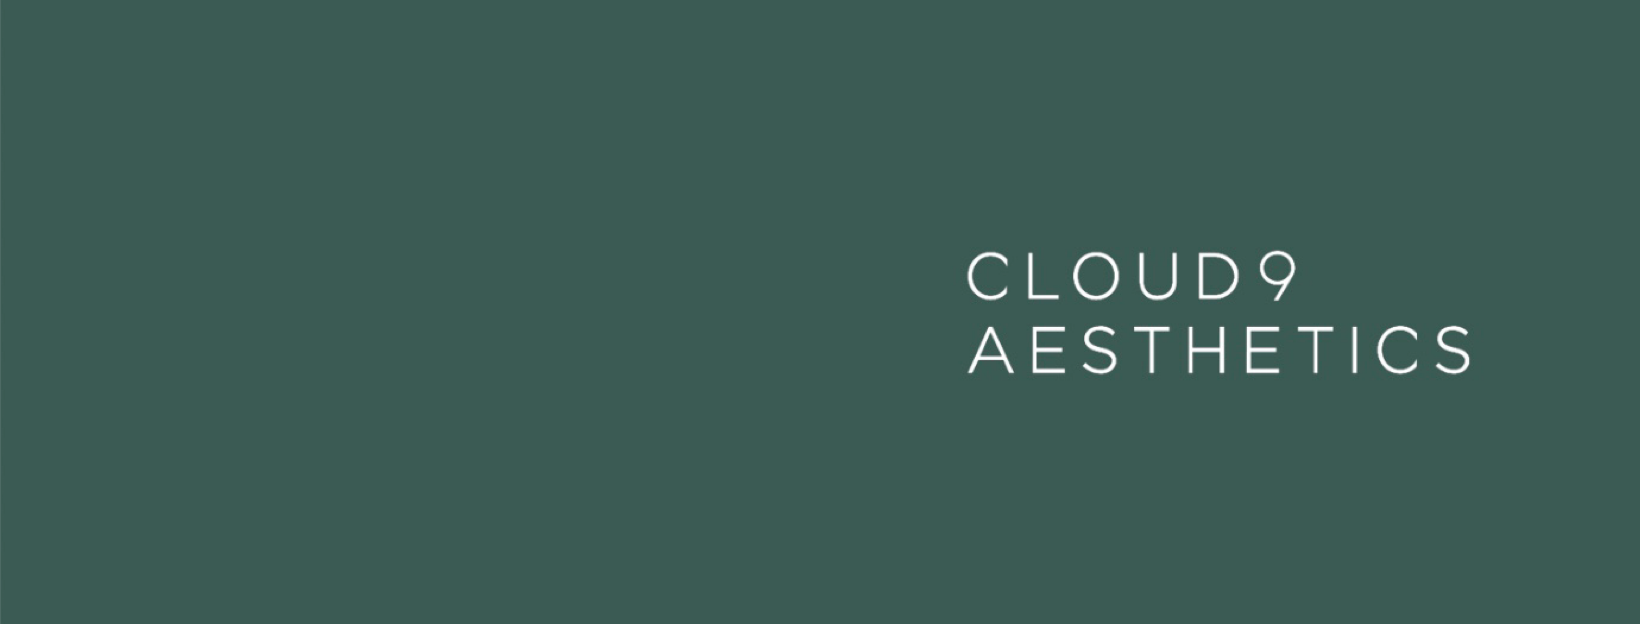 Meet the next skincare business that will take over Knoxville: Cloud9 Aesthetics